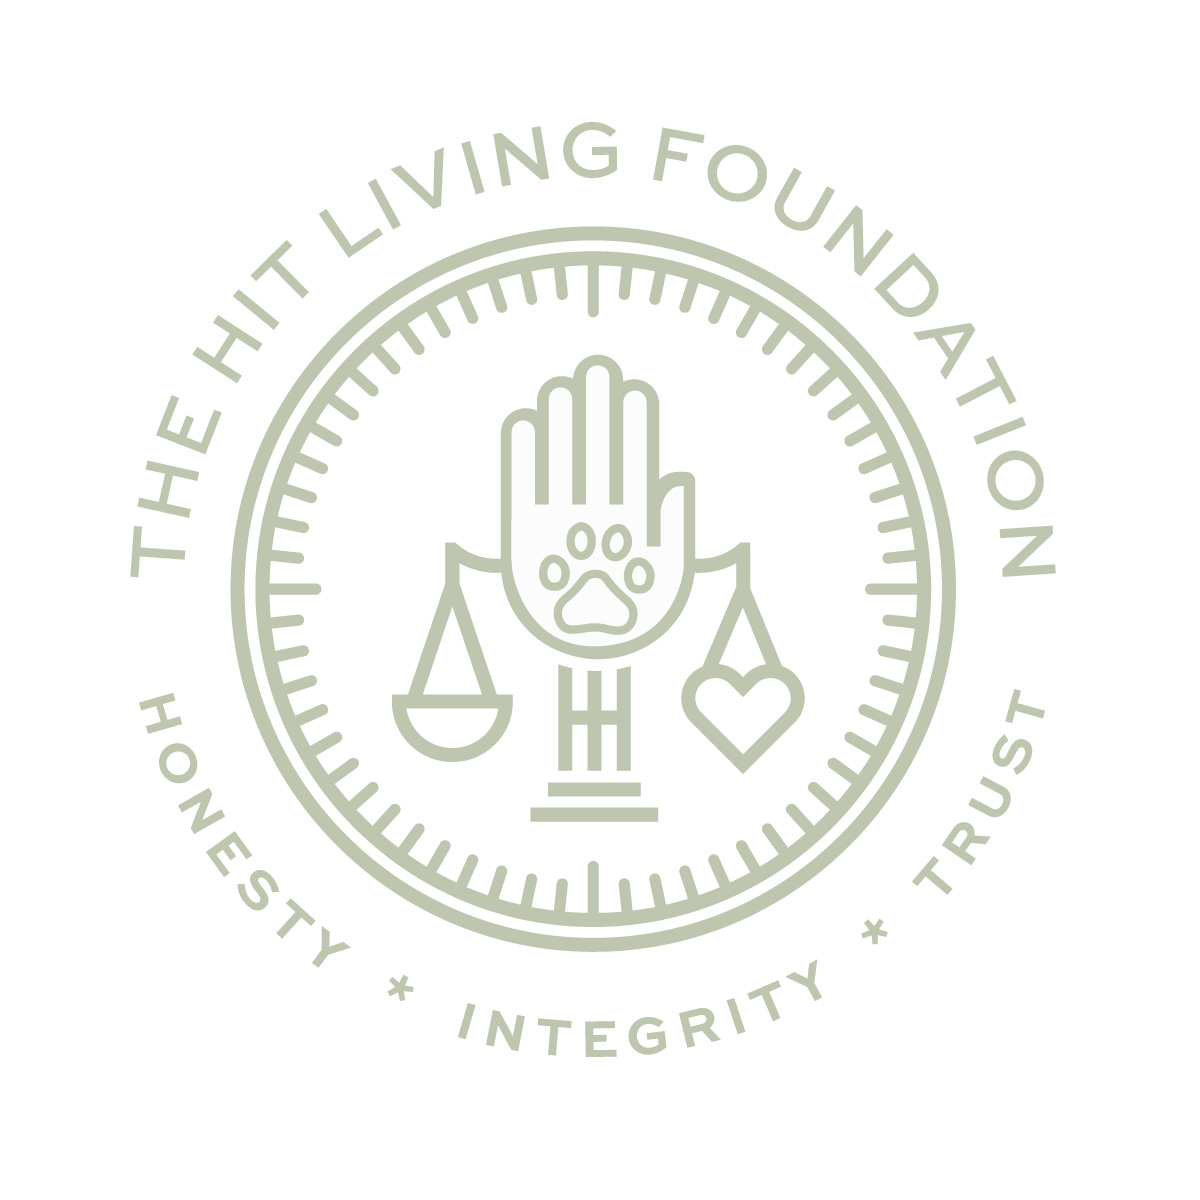 The HIT Living Foundation